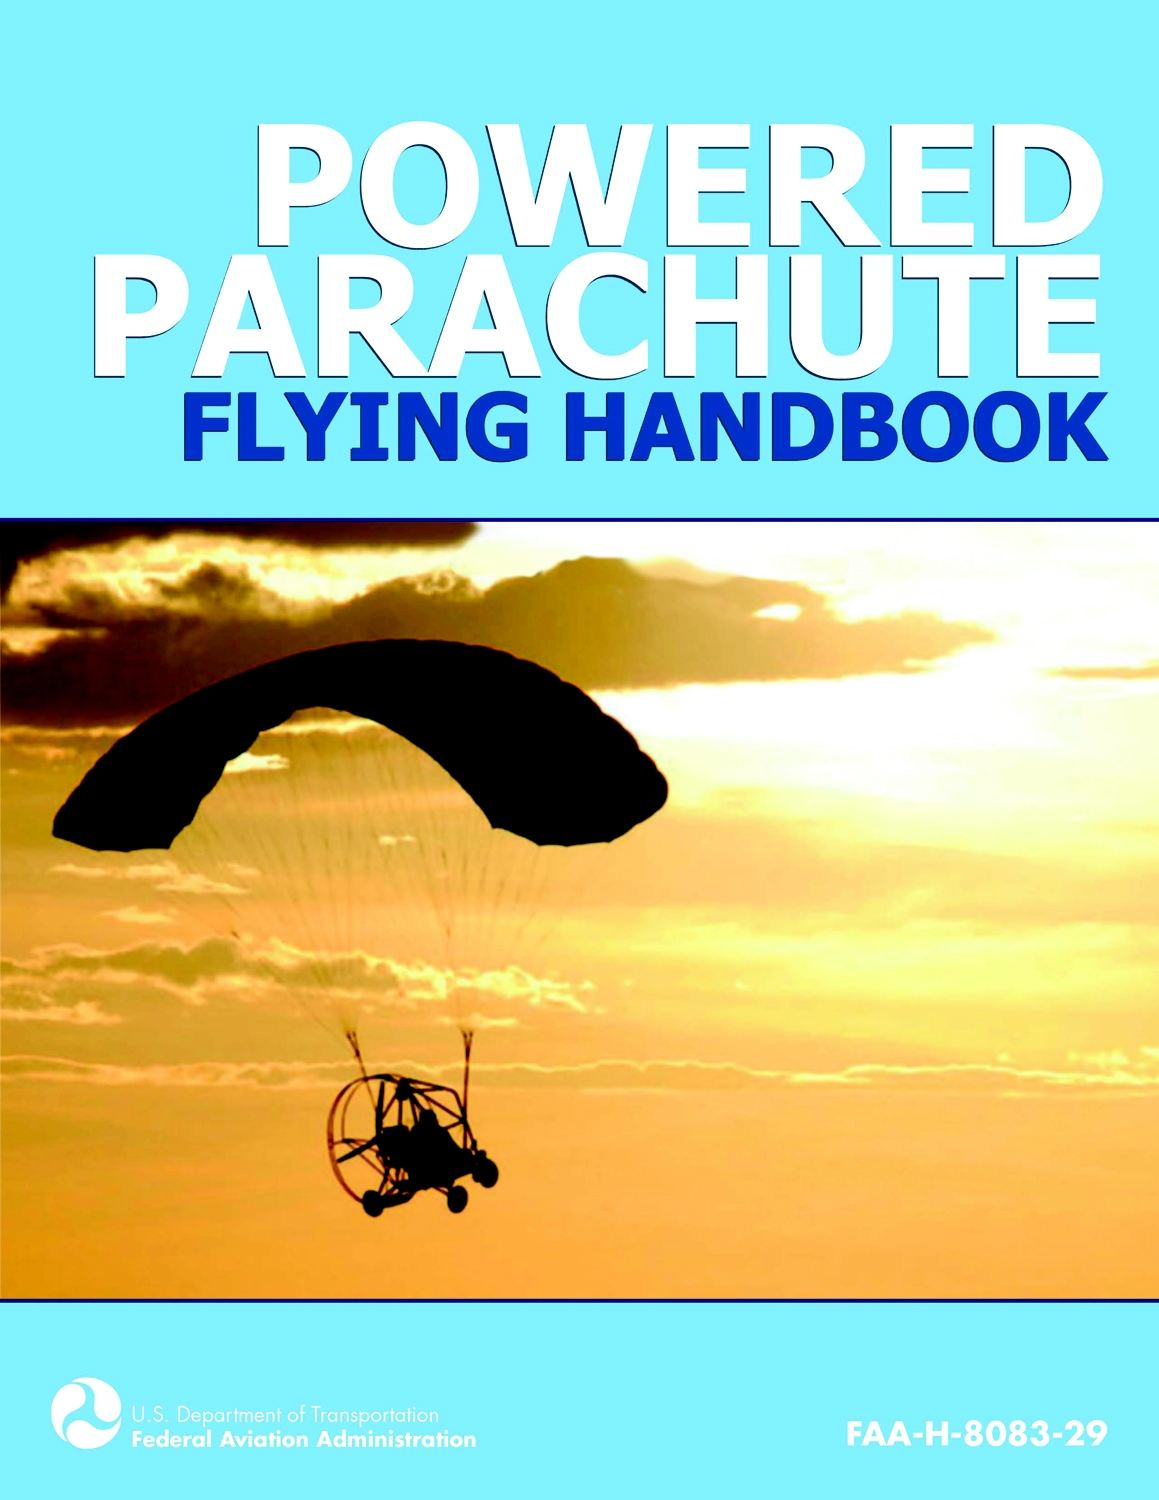 Powered Parachute Flying Handbook: FAA-H-8083-29